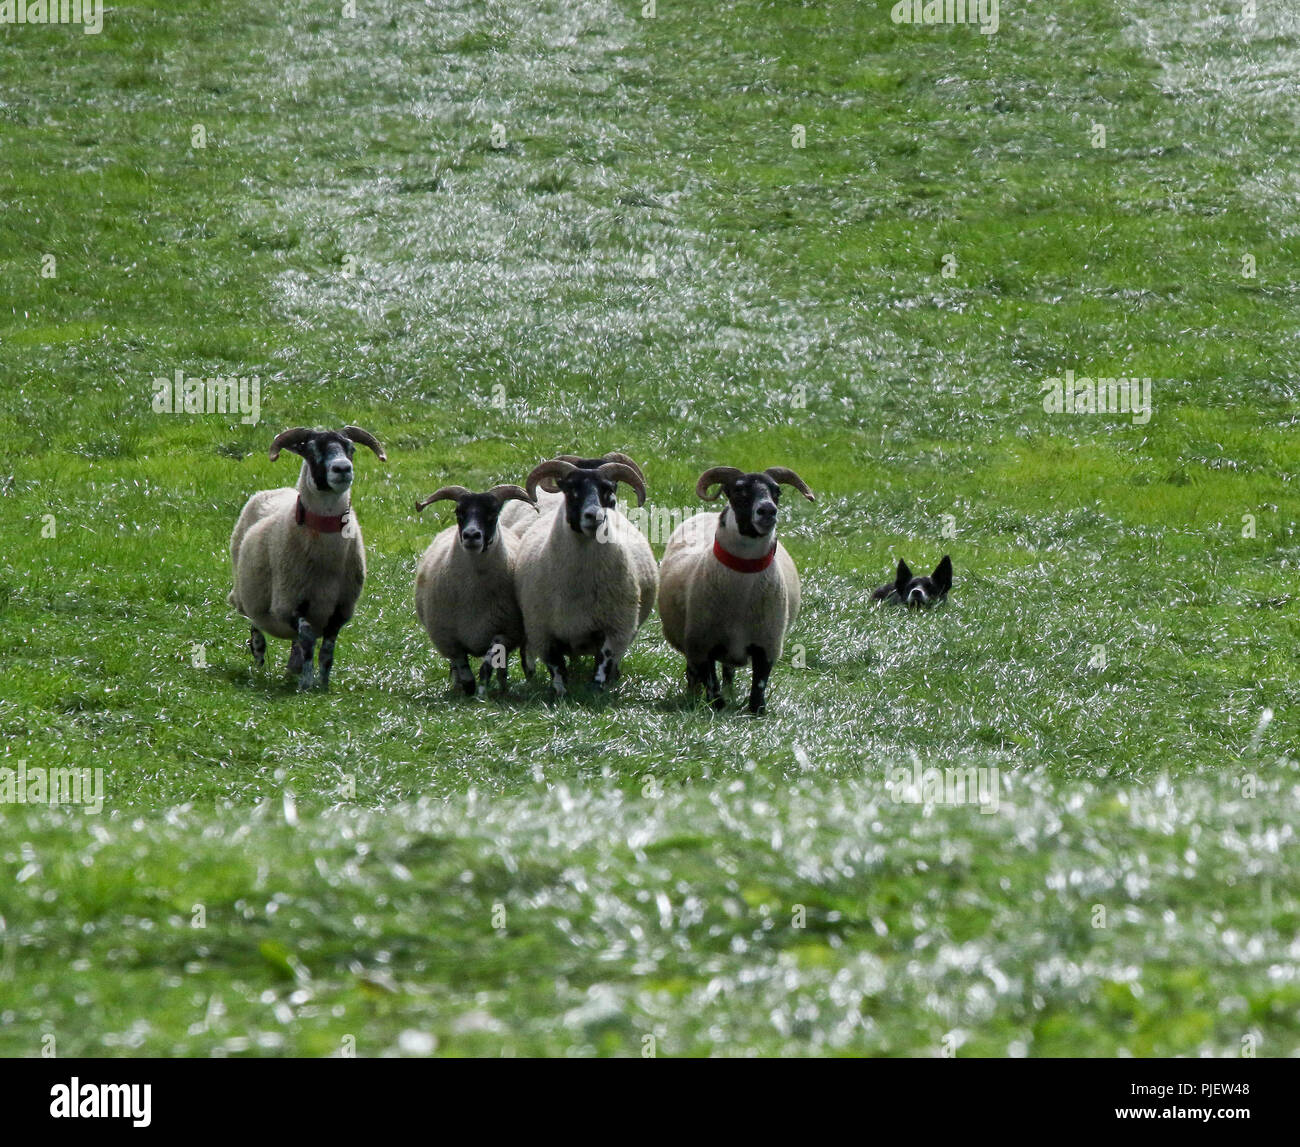 Gill Hall Estate, Dromore, County Down, Northern Ireland. 06 September 2018. Sheep being rounded by collie during competition.Today saw the start of the 2018 International Sheep Dog Trials. The top dogs and handlers from England, Ireland, Scotland and Wales compete for the finals and top titles on Saturday. Credit: David Hunter/Alamy Live News. - Stock Image